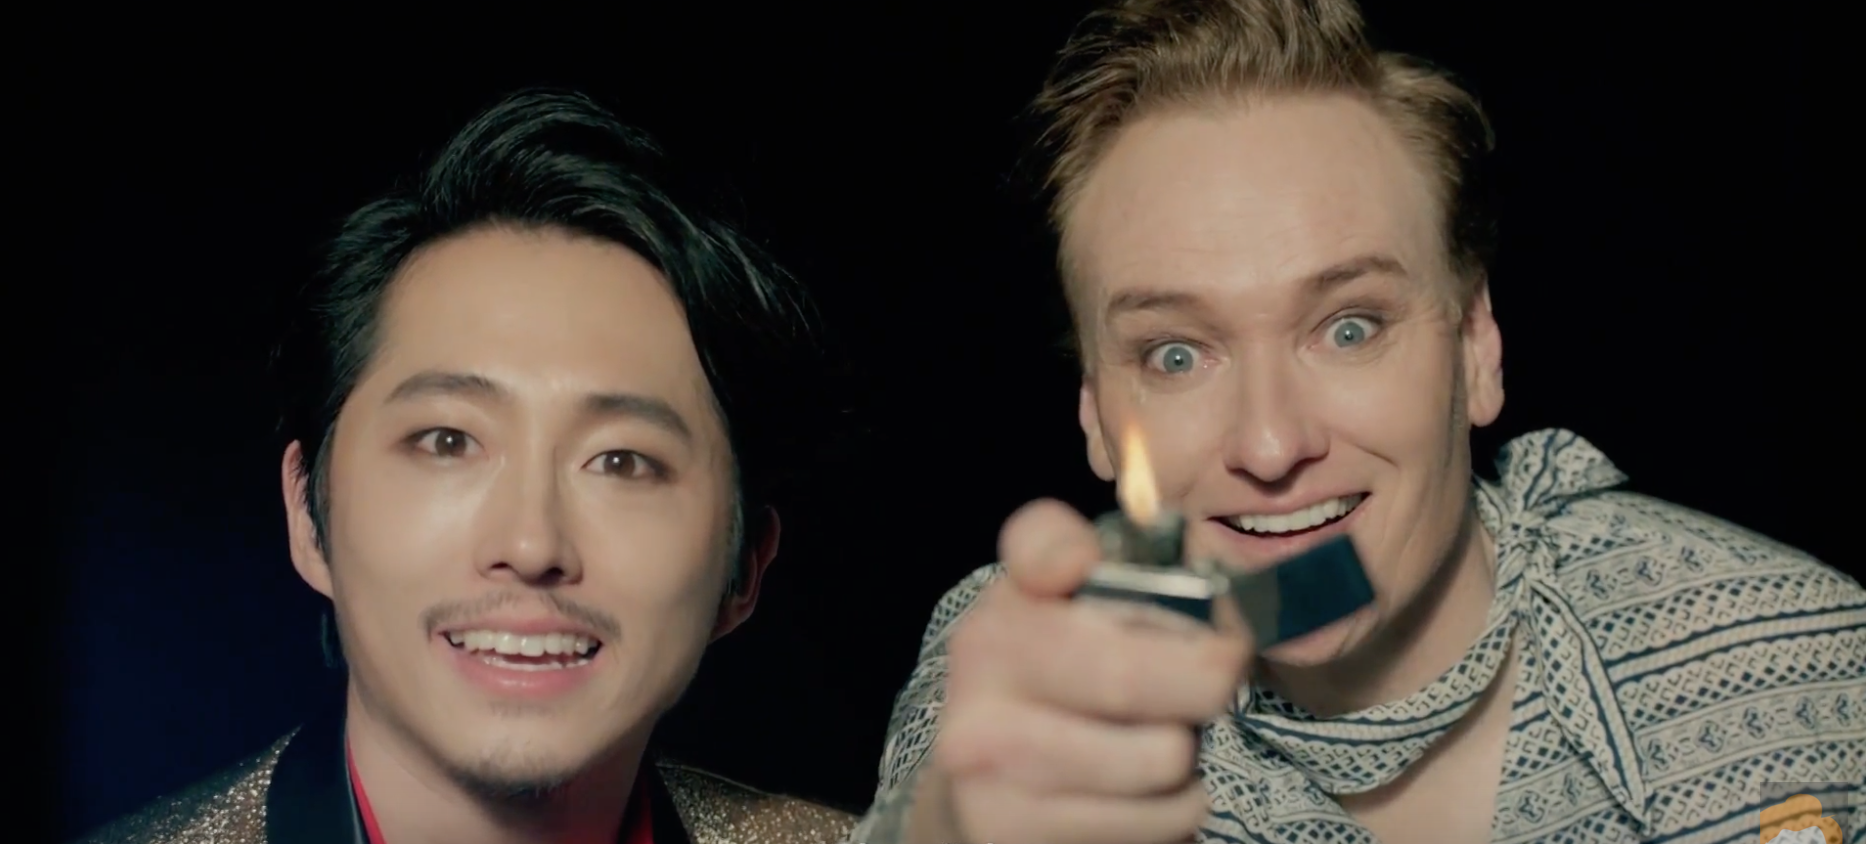 "Conan O'Brien and Steven Yeun Become K-Pop Stars in Park Jin Young's ""Fire"" MV"